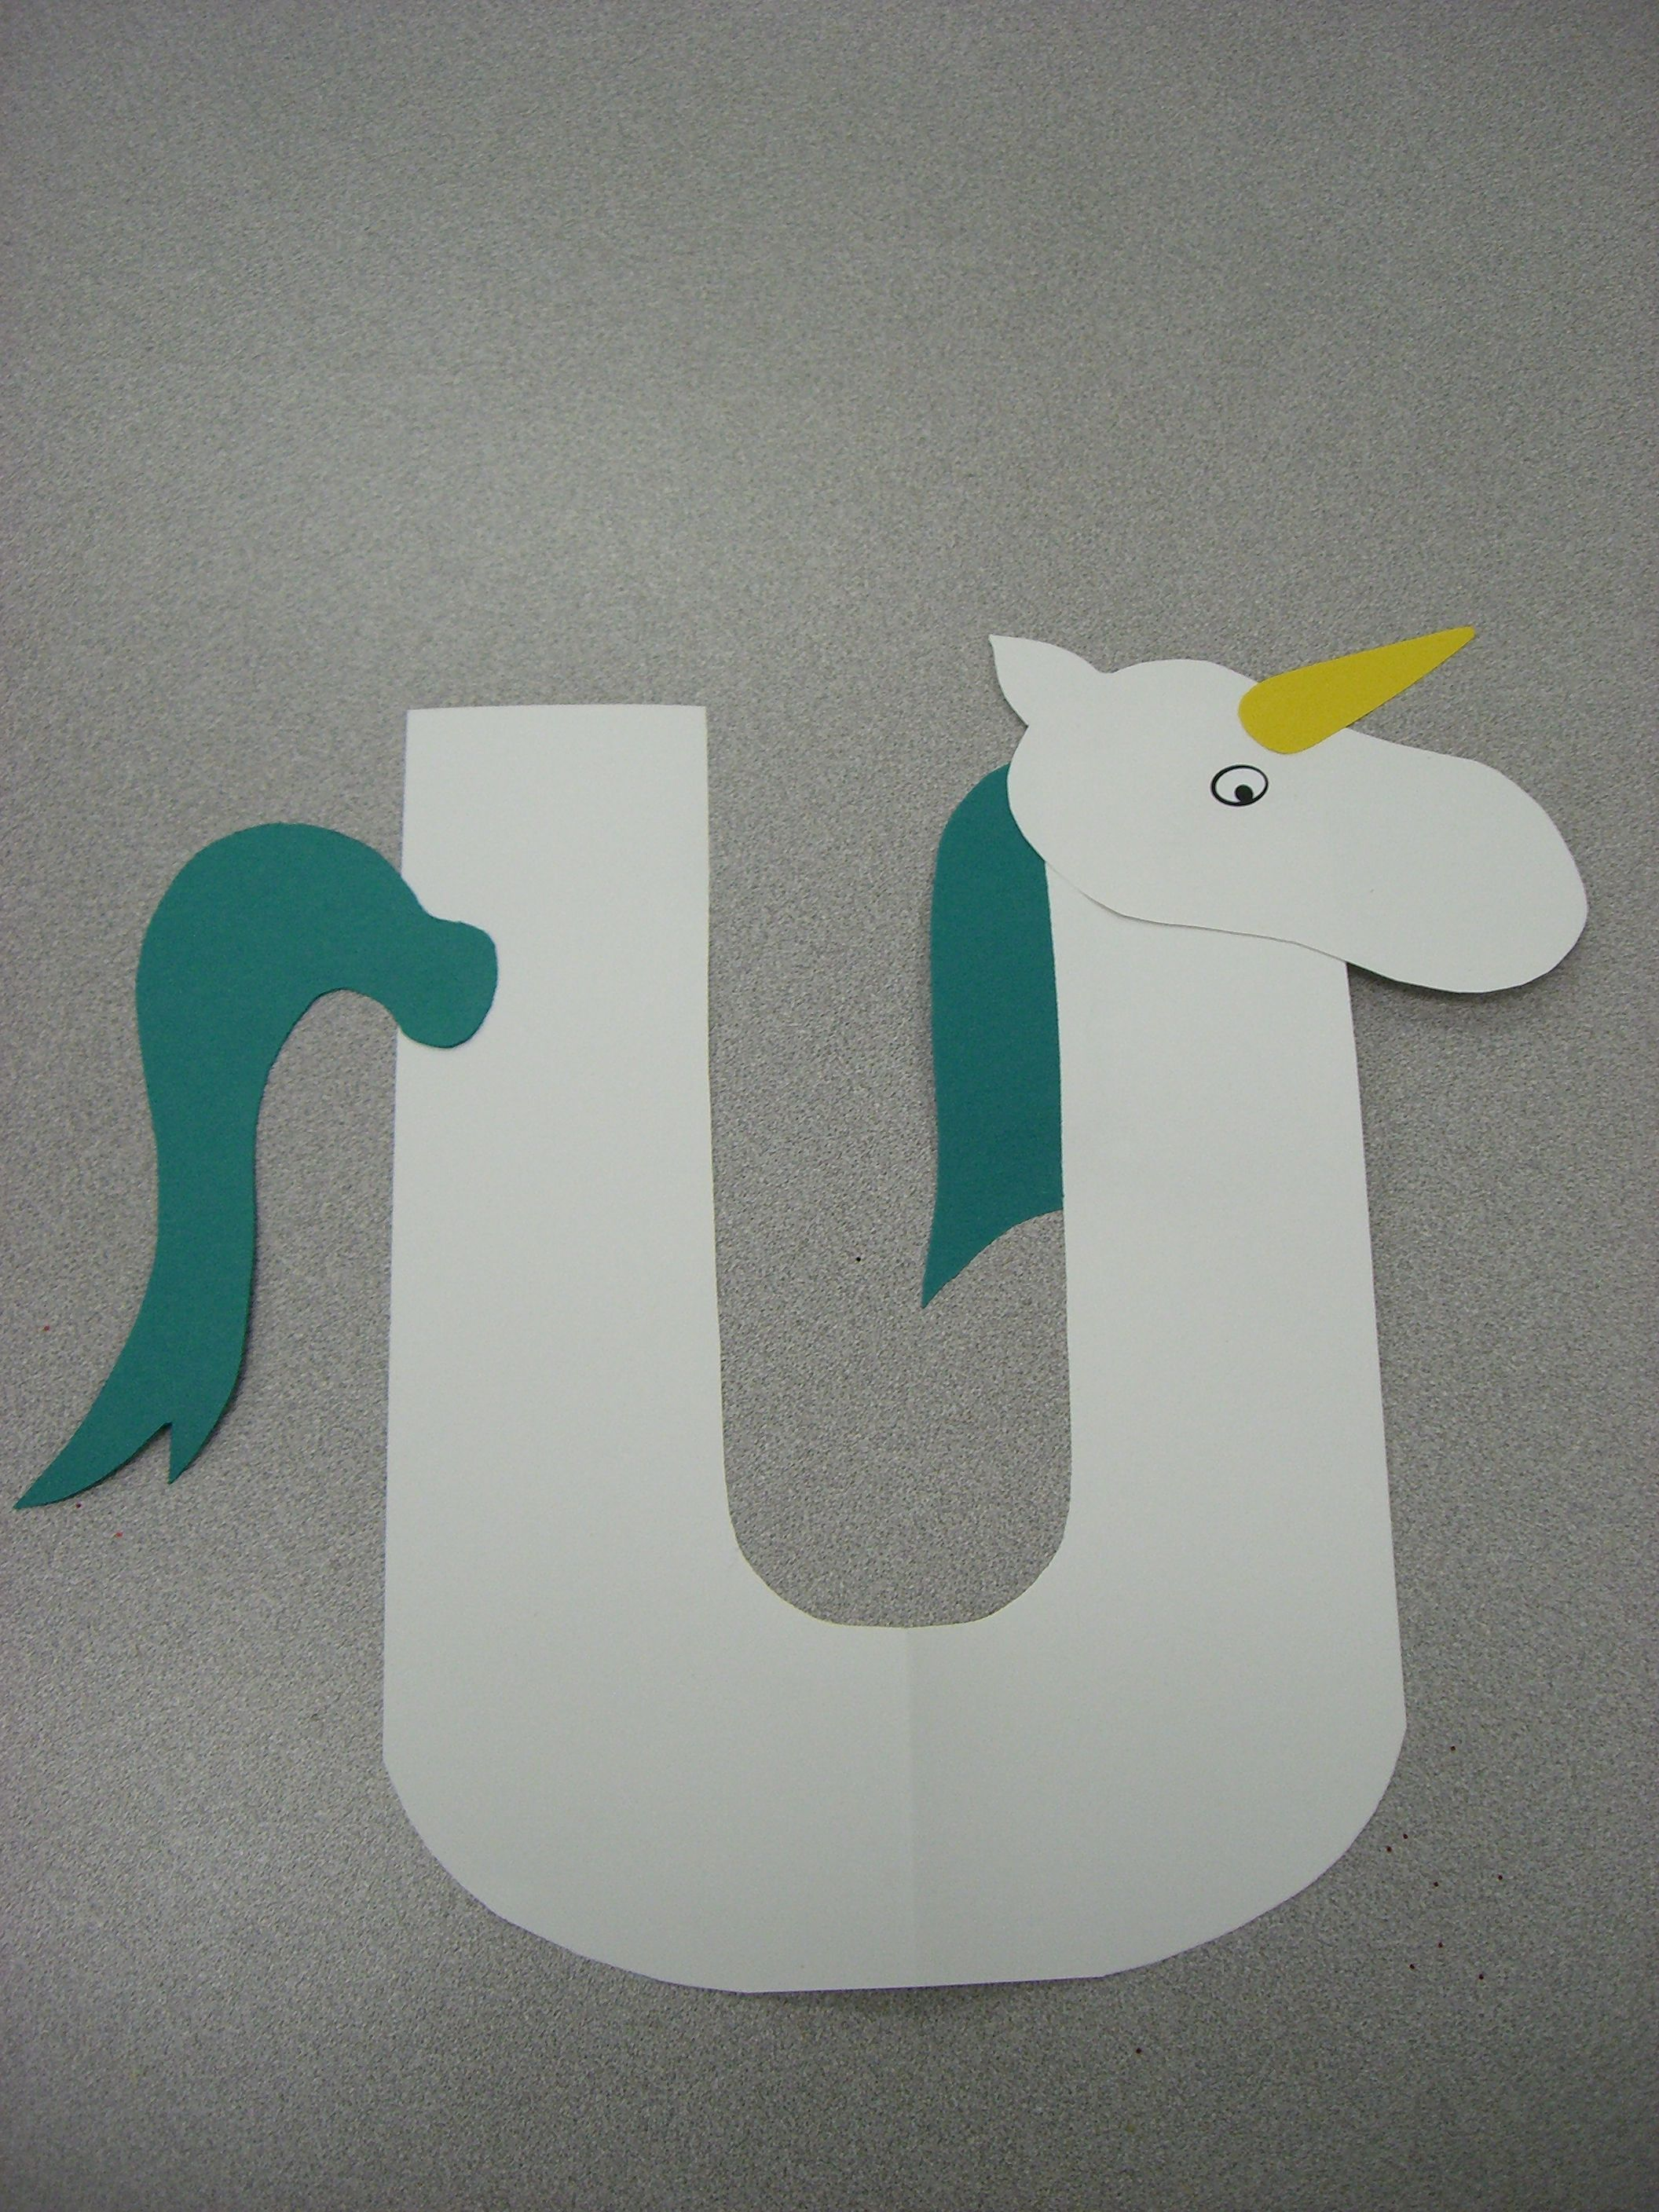 U Is For Unicorn Preschool Alphabet Craft